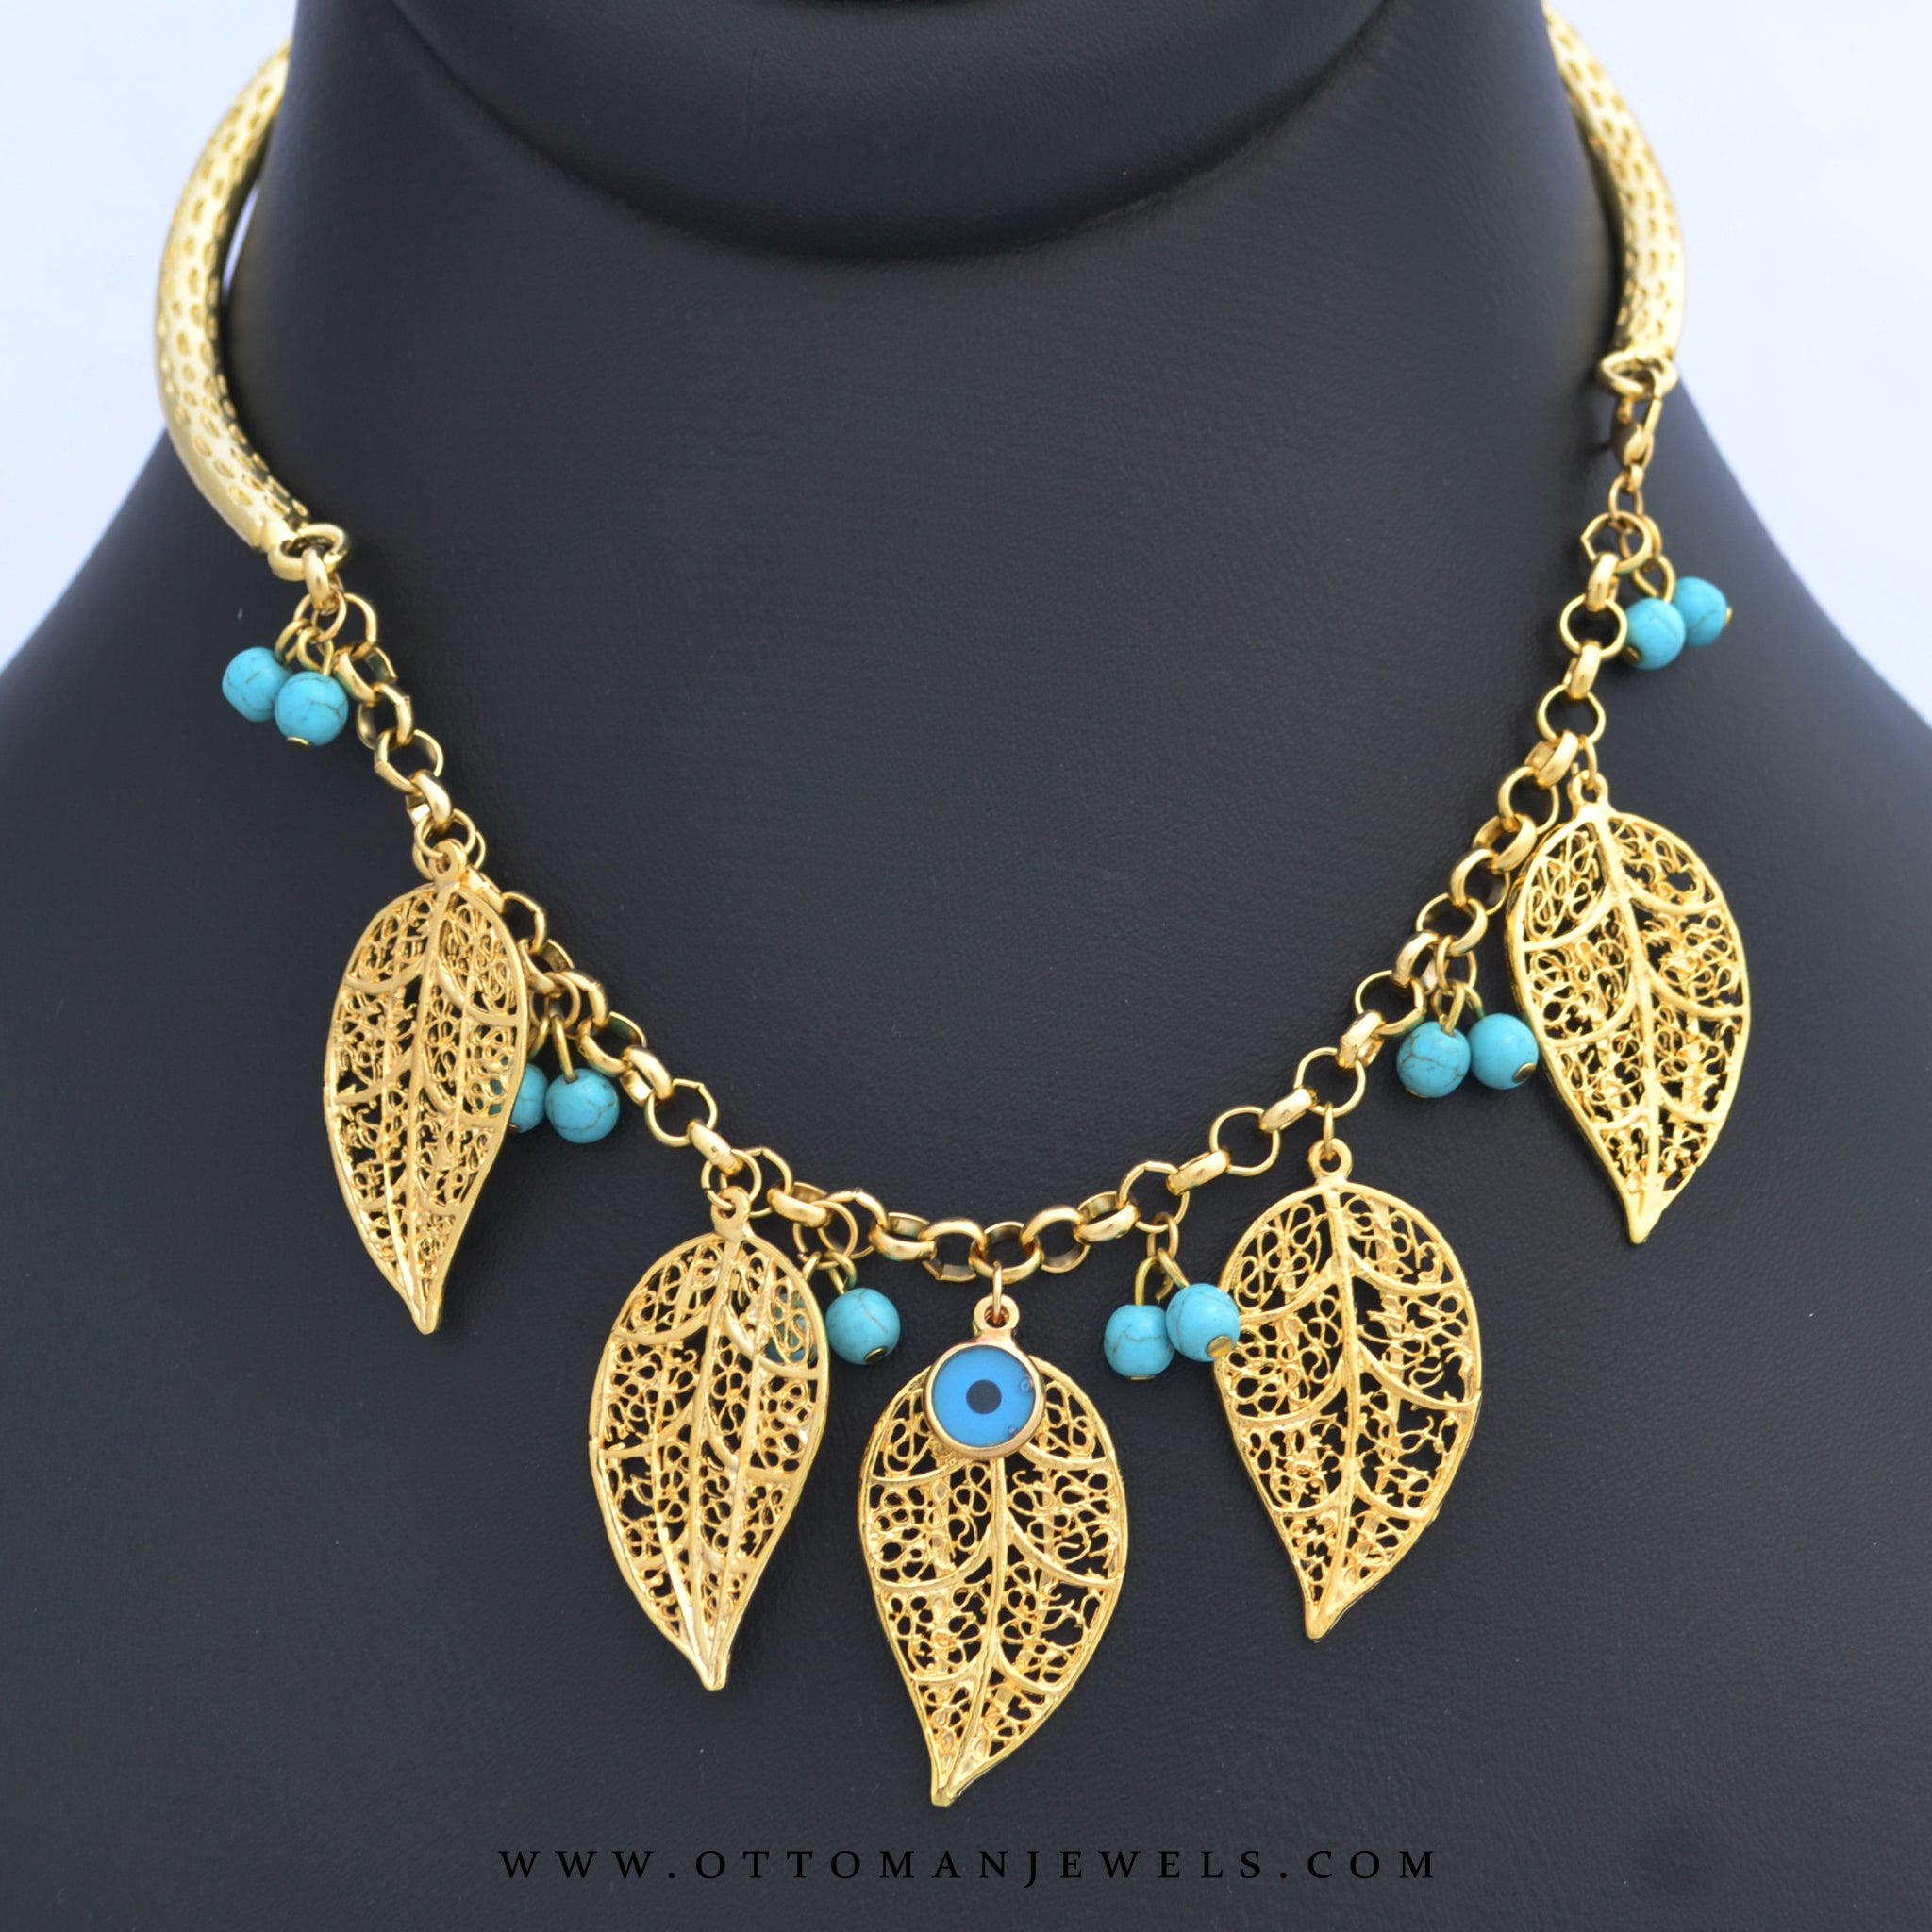 The Current trend of Artificial or Costume Jewellery in Pakistan